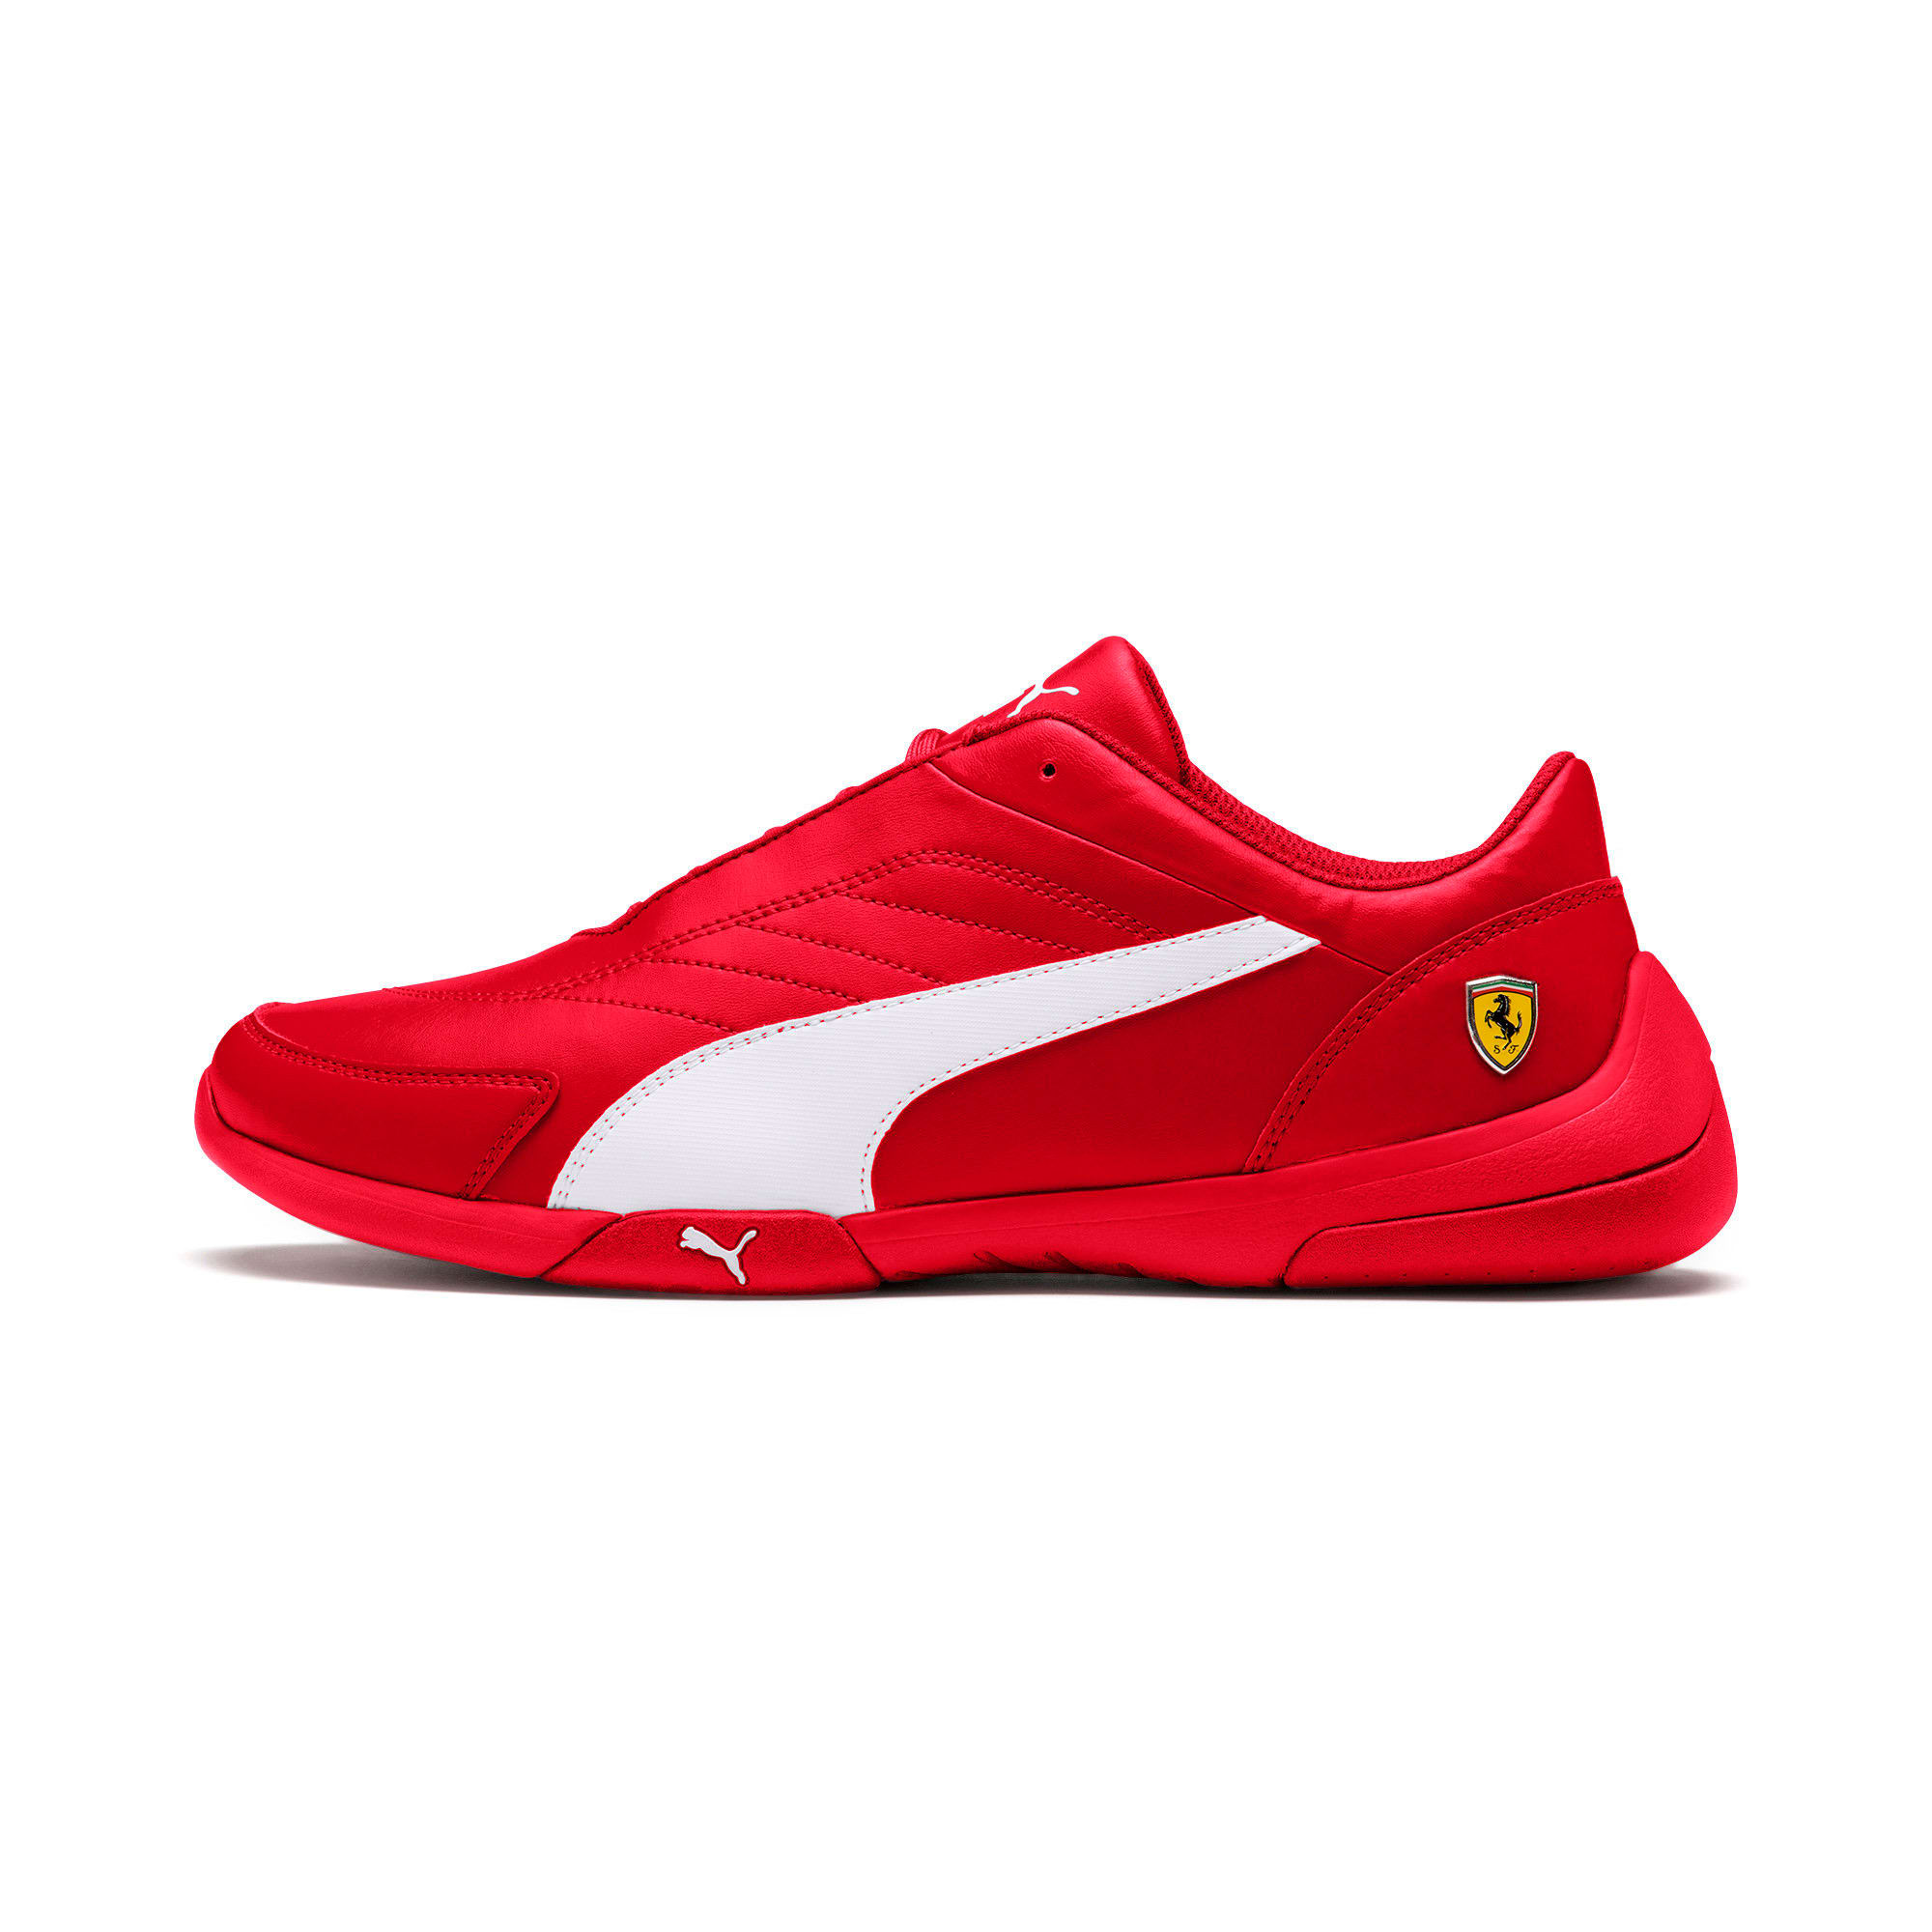 Thumbnail 1 of Scuderia Ferrari Kart Cat III Shoes, Rosso Corsa-White, medium